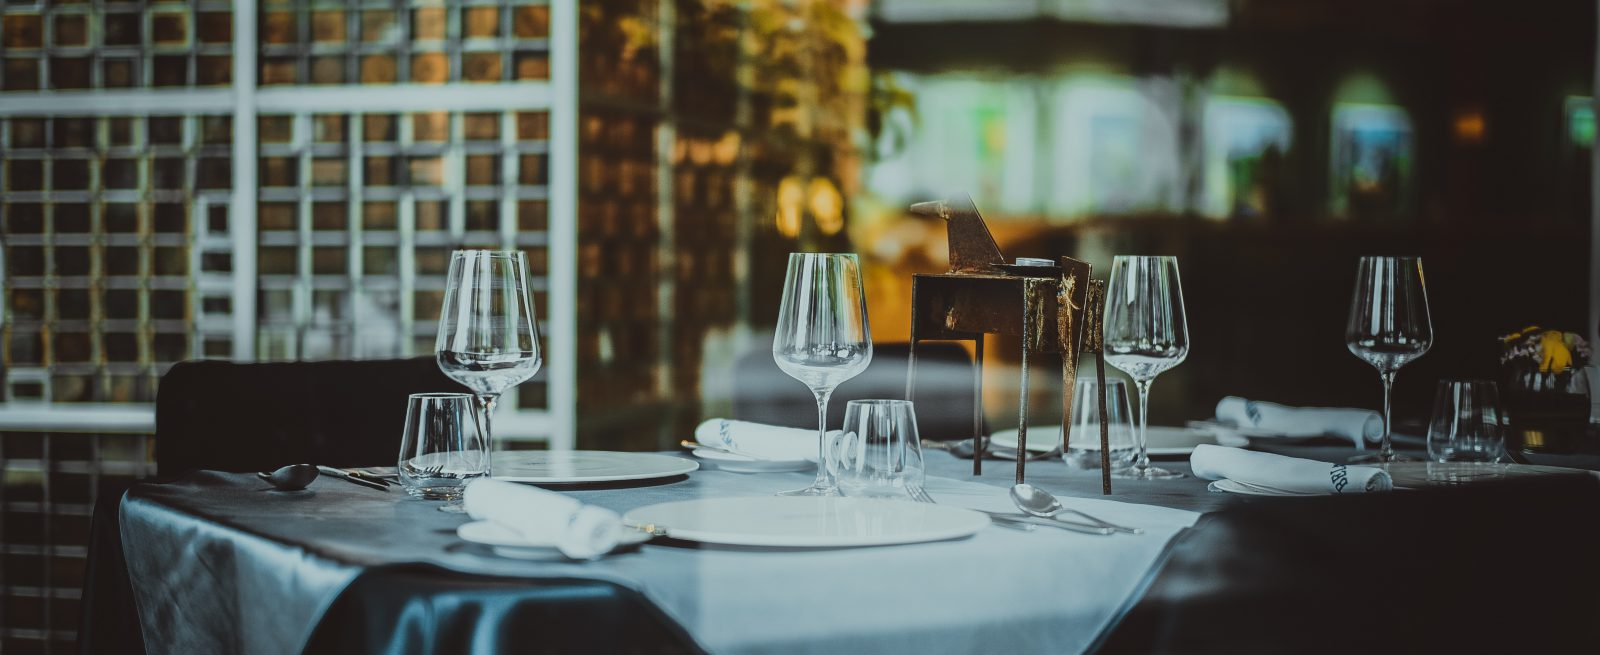 Dining Etiquette A Restaurant Guide To Setting Informal